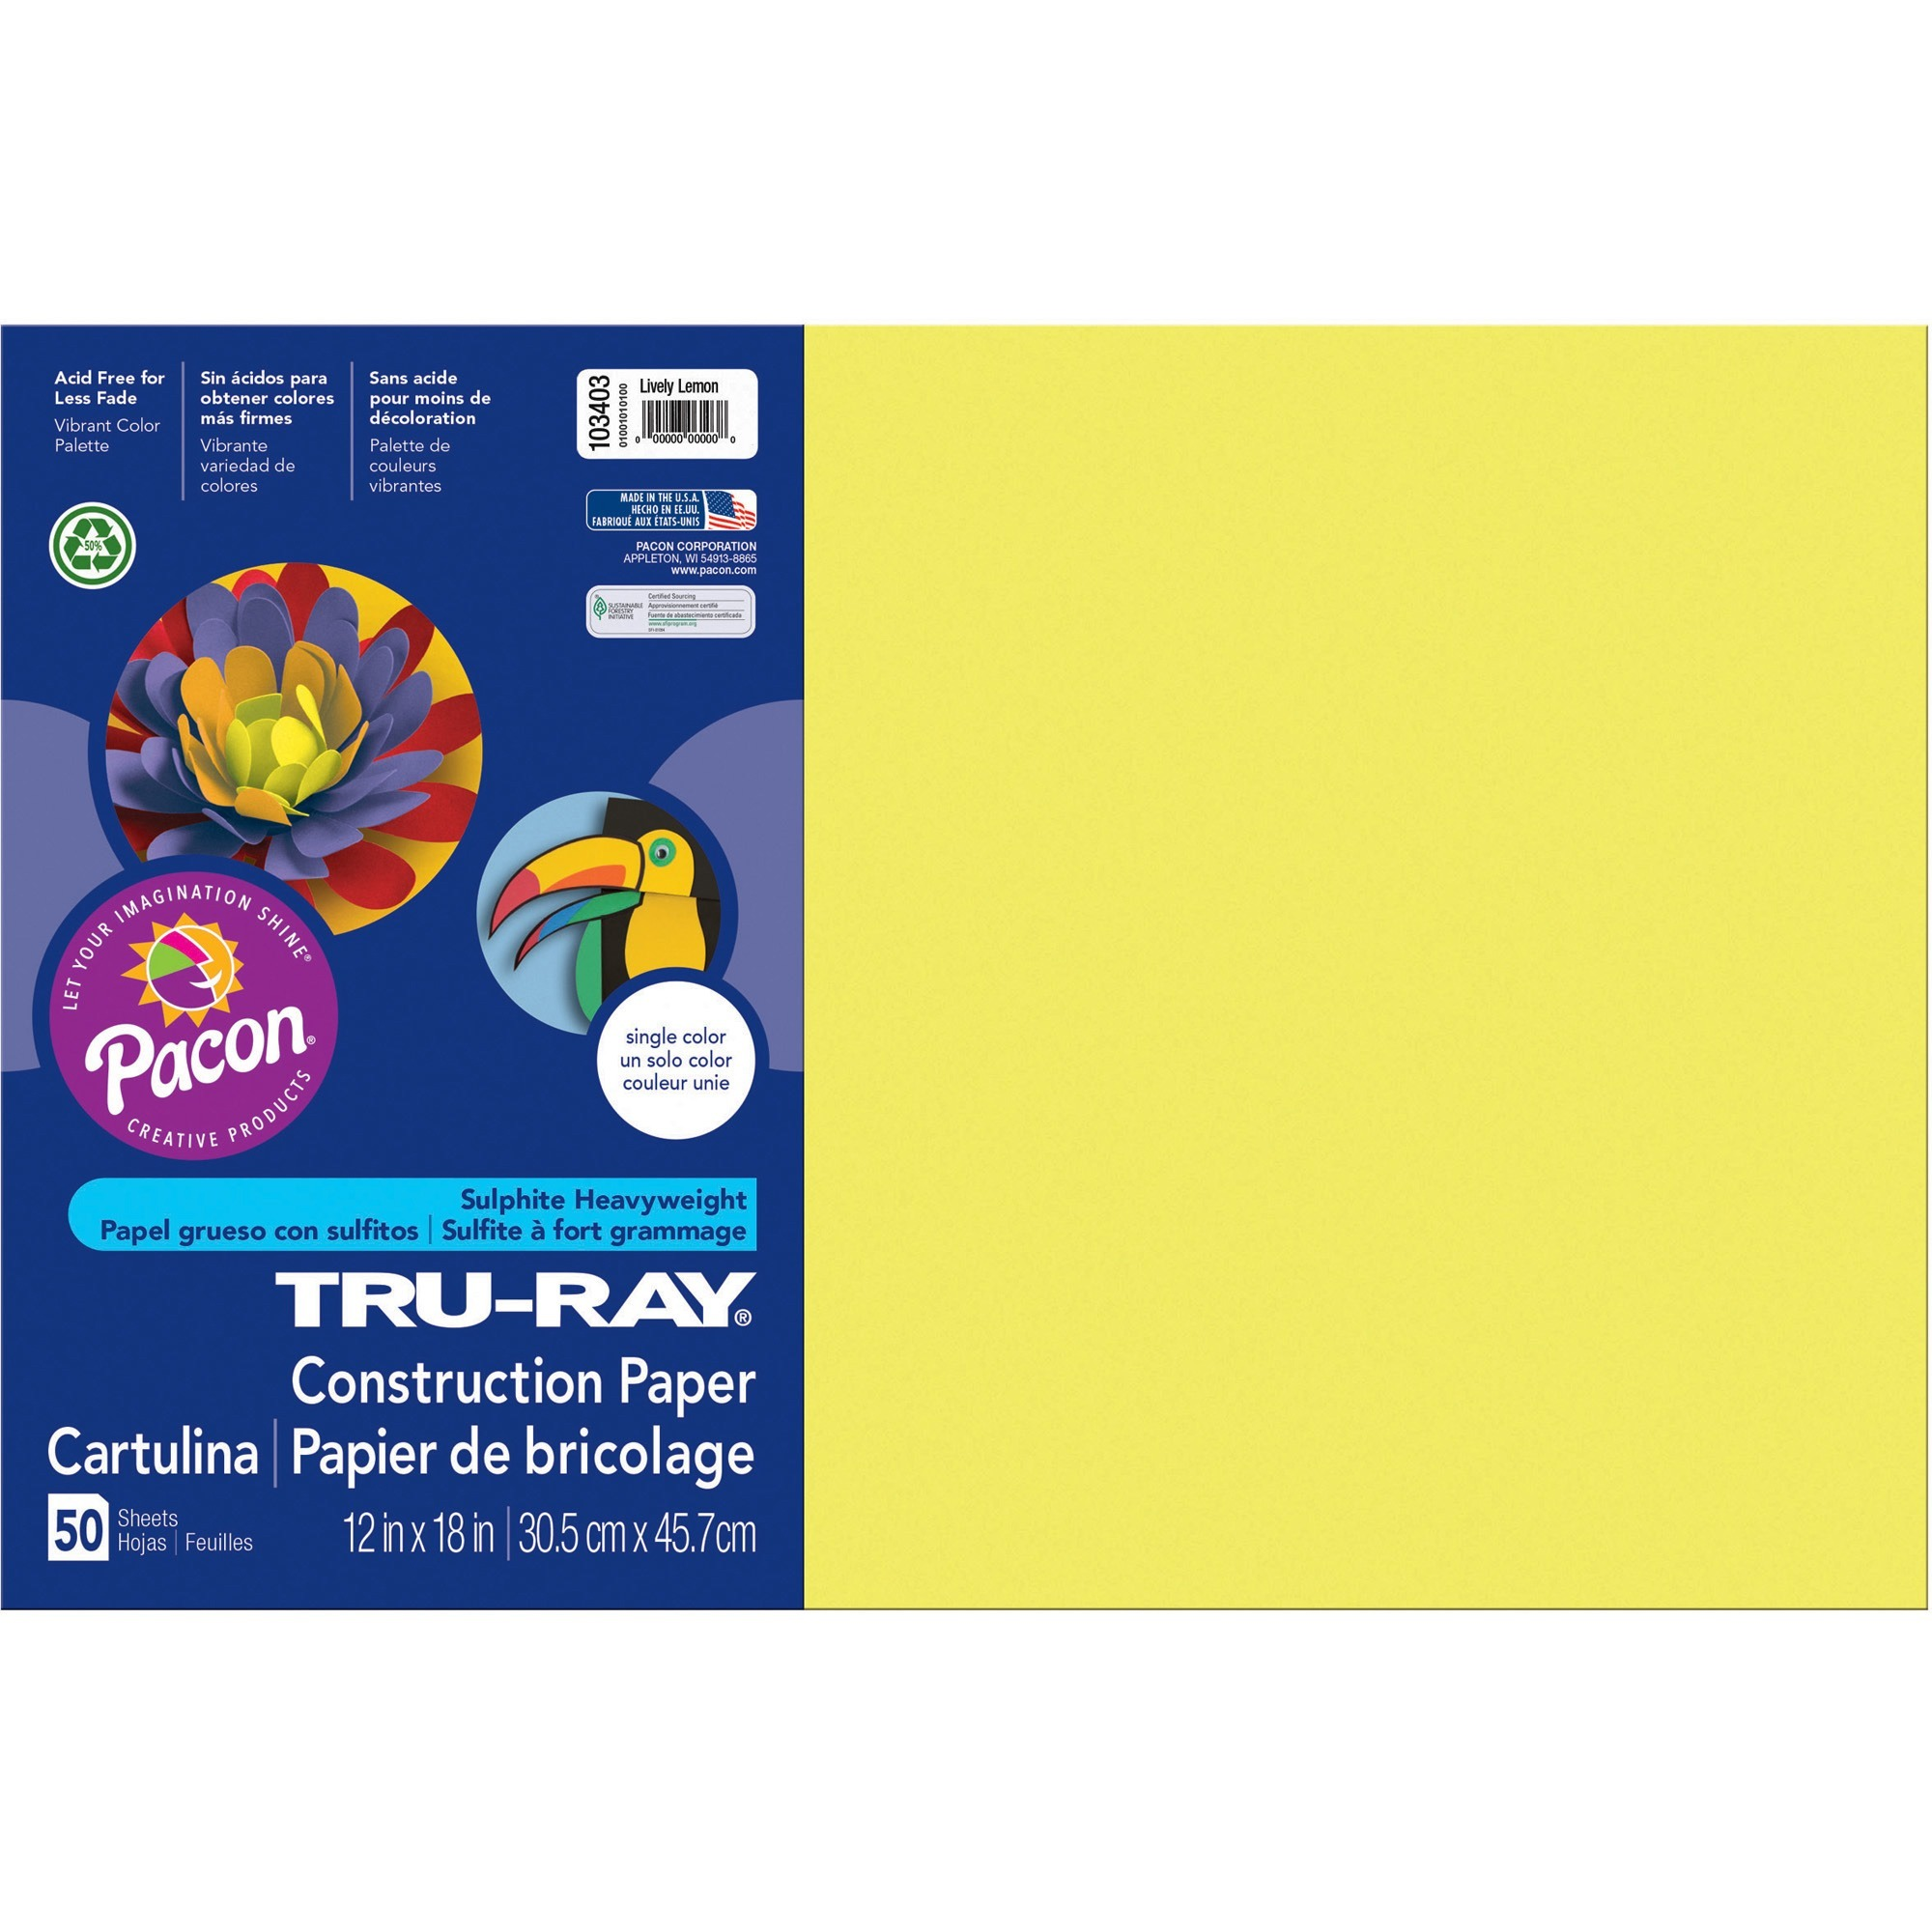 Tru-Ray, PAC103403, Construction Paper, 50 / Pack, Lively Lemon